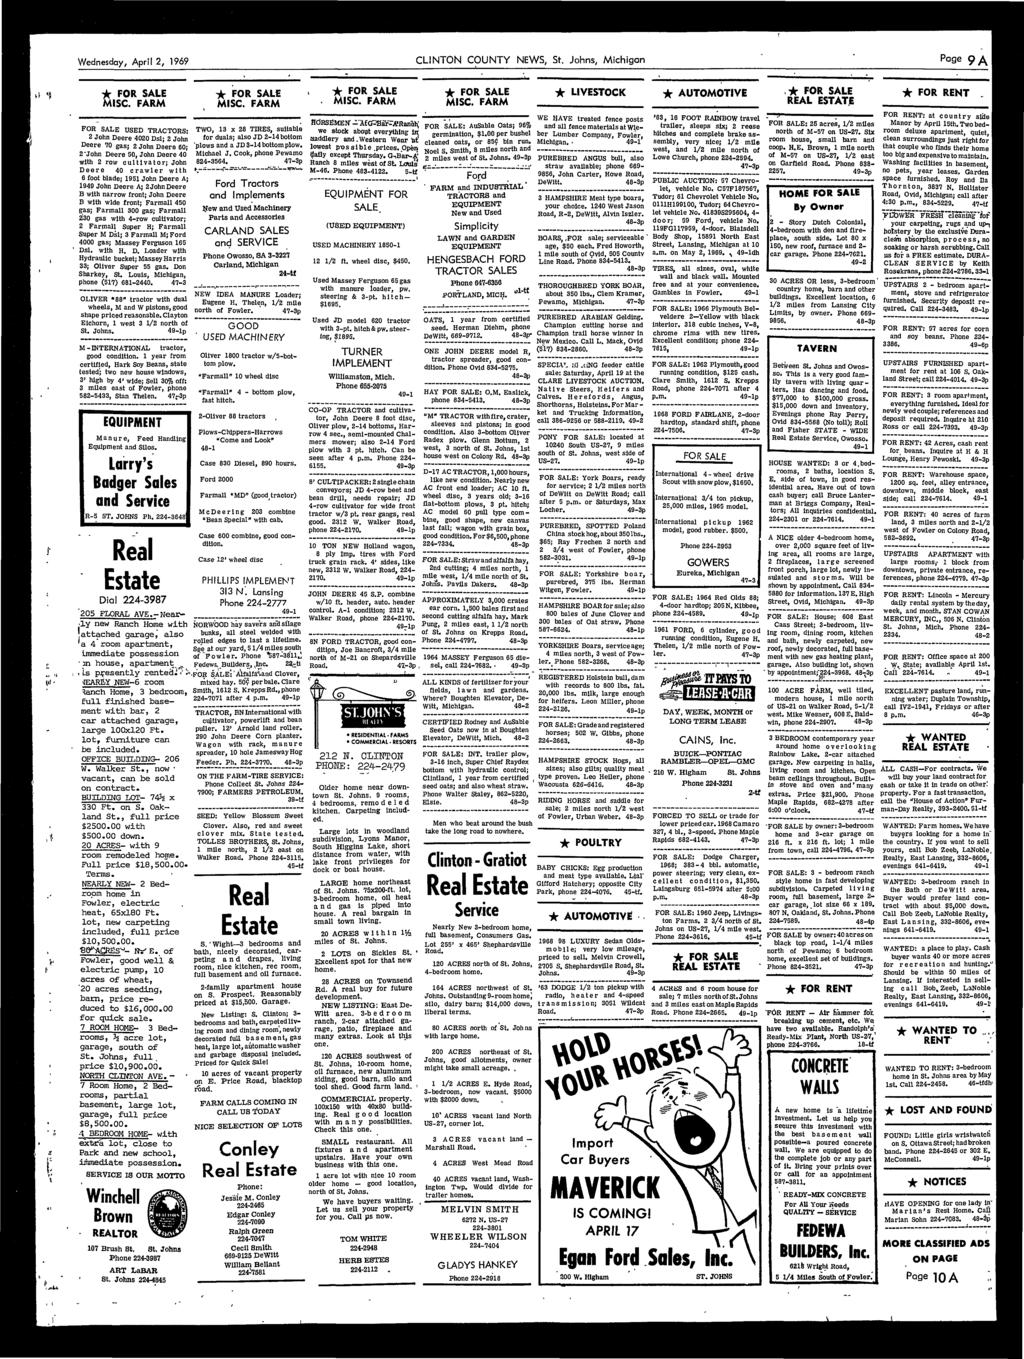 County enters dewitt assessment hassle pdf wednesday april 2 1969 clinton county news st johns michigan page fandeluxe Image collections